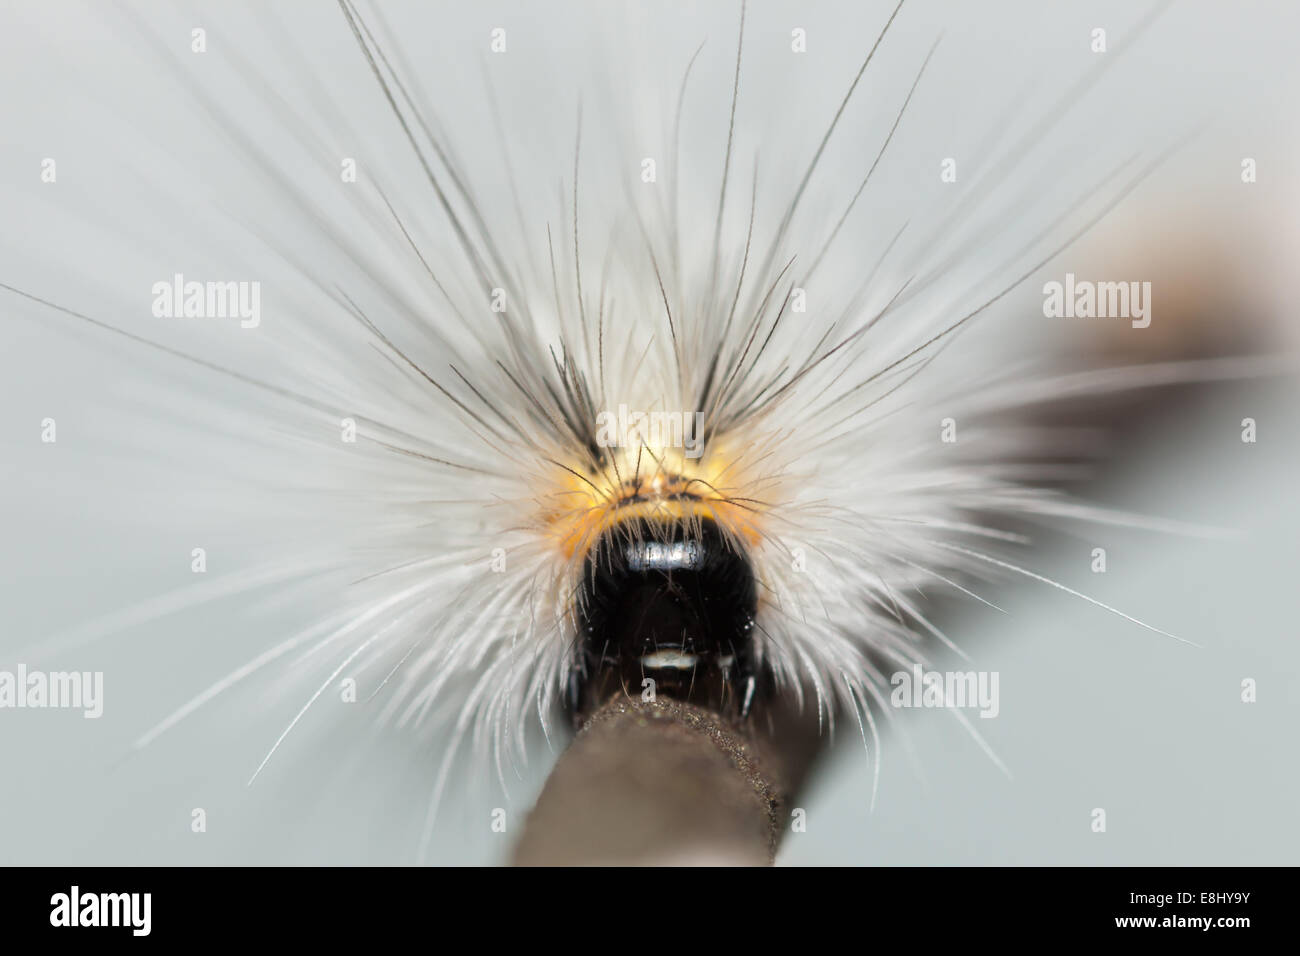 Front view of a Fall Webworm Moth (Hyphantria cunea) caterpillar (larva) - Stock Image